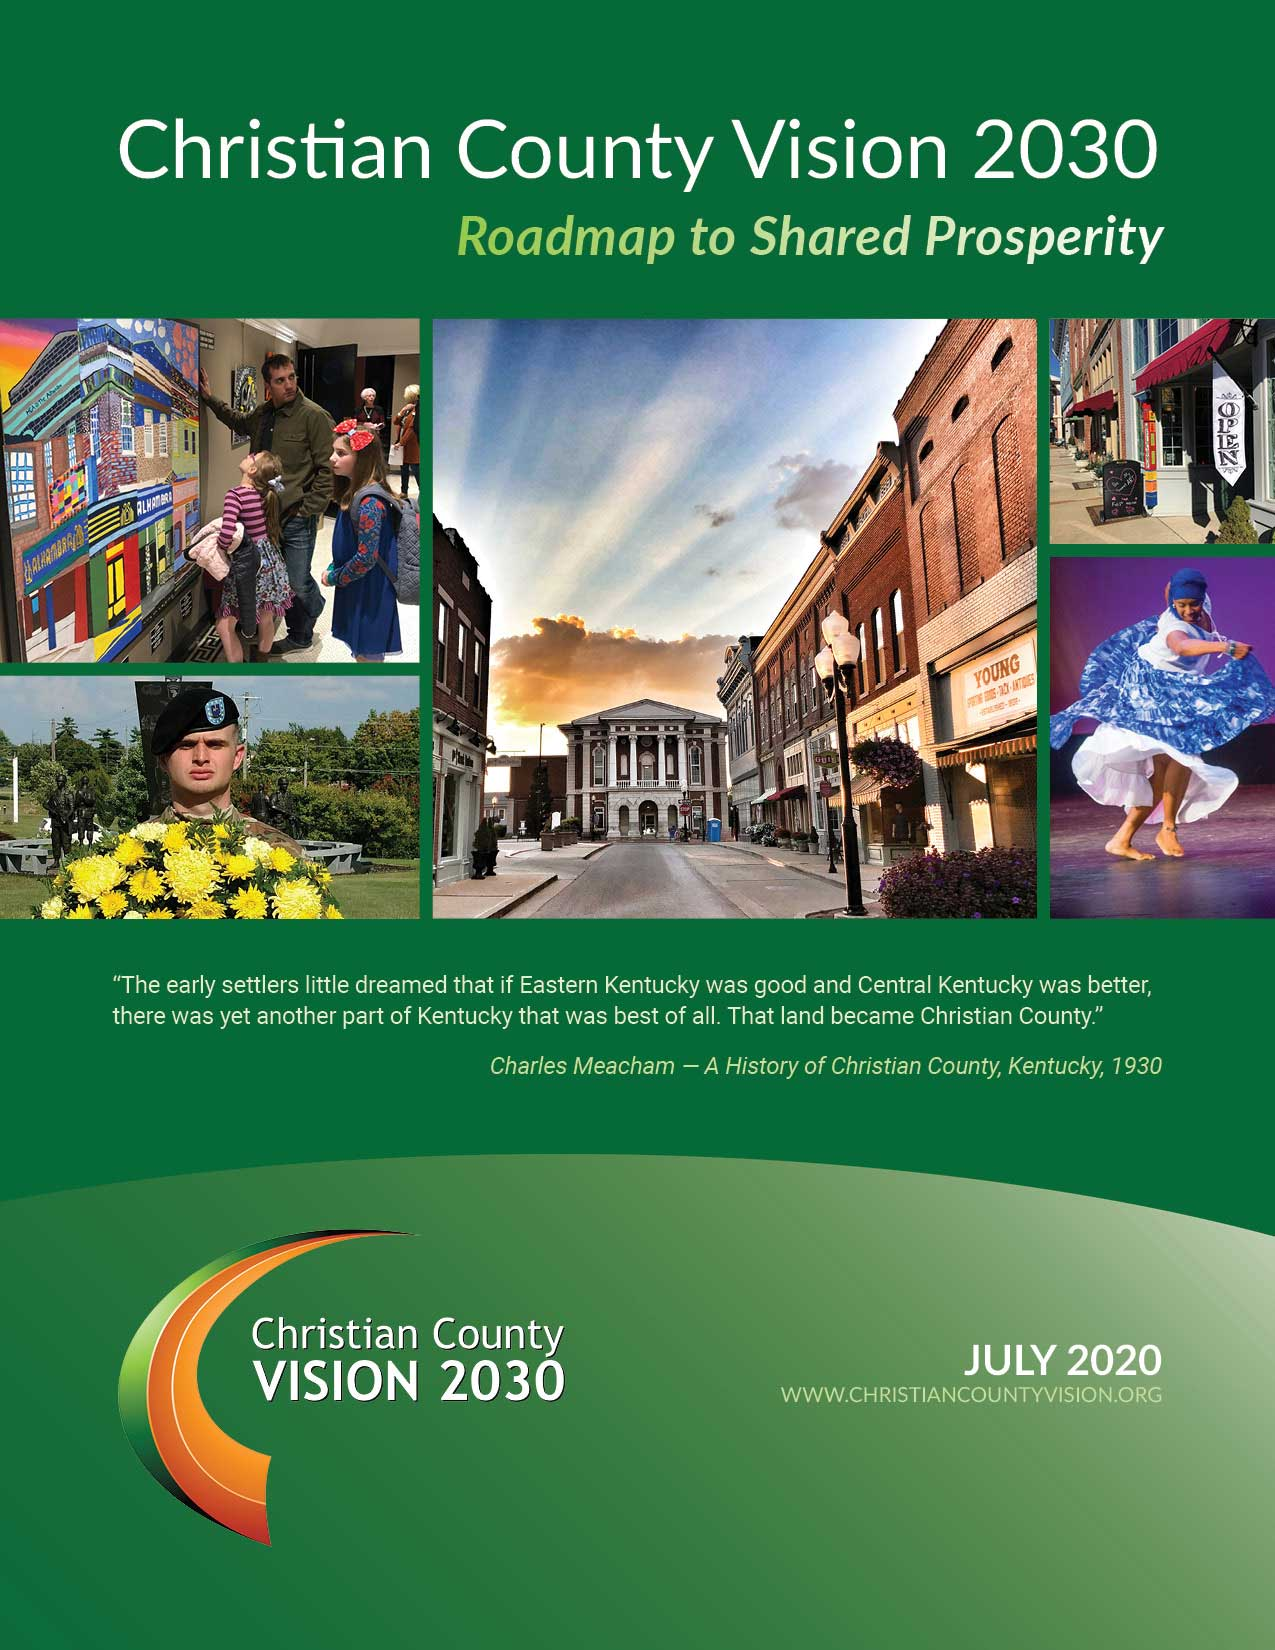 Christian County Vision 2030 Plan